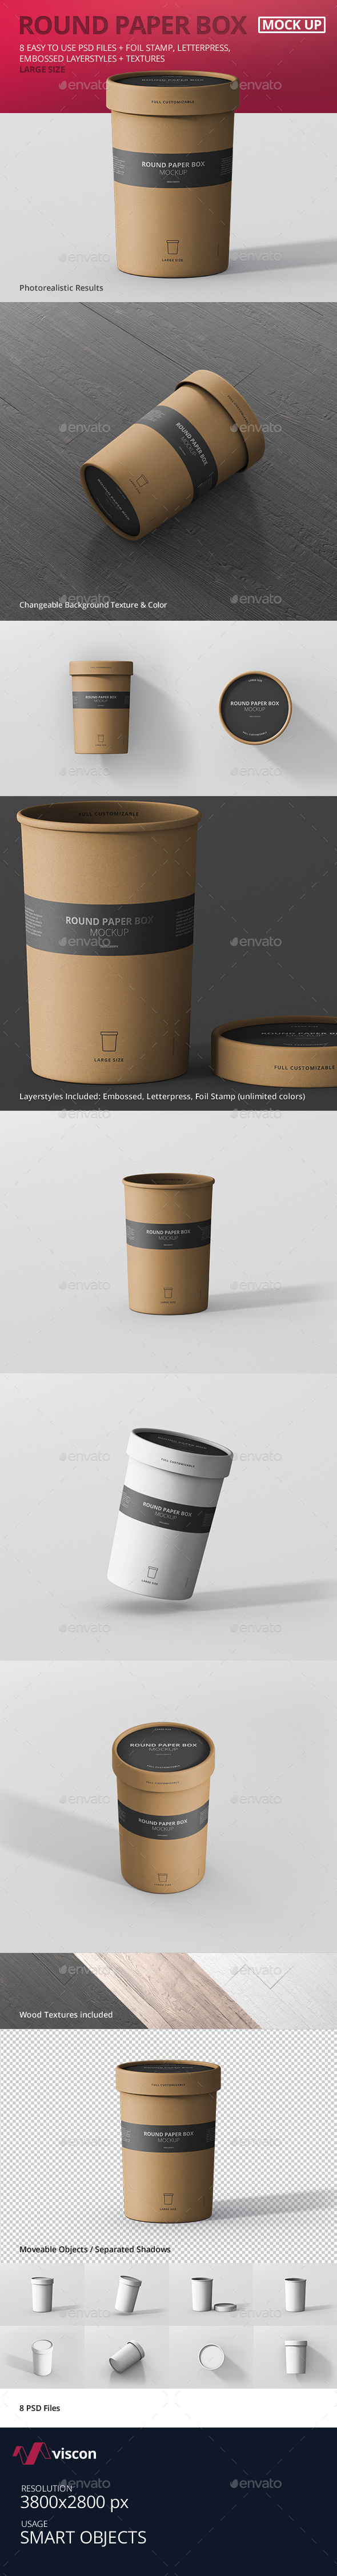 Paper Box Mockup Round - Large Size - Food and Drink Packaging